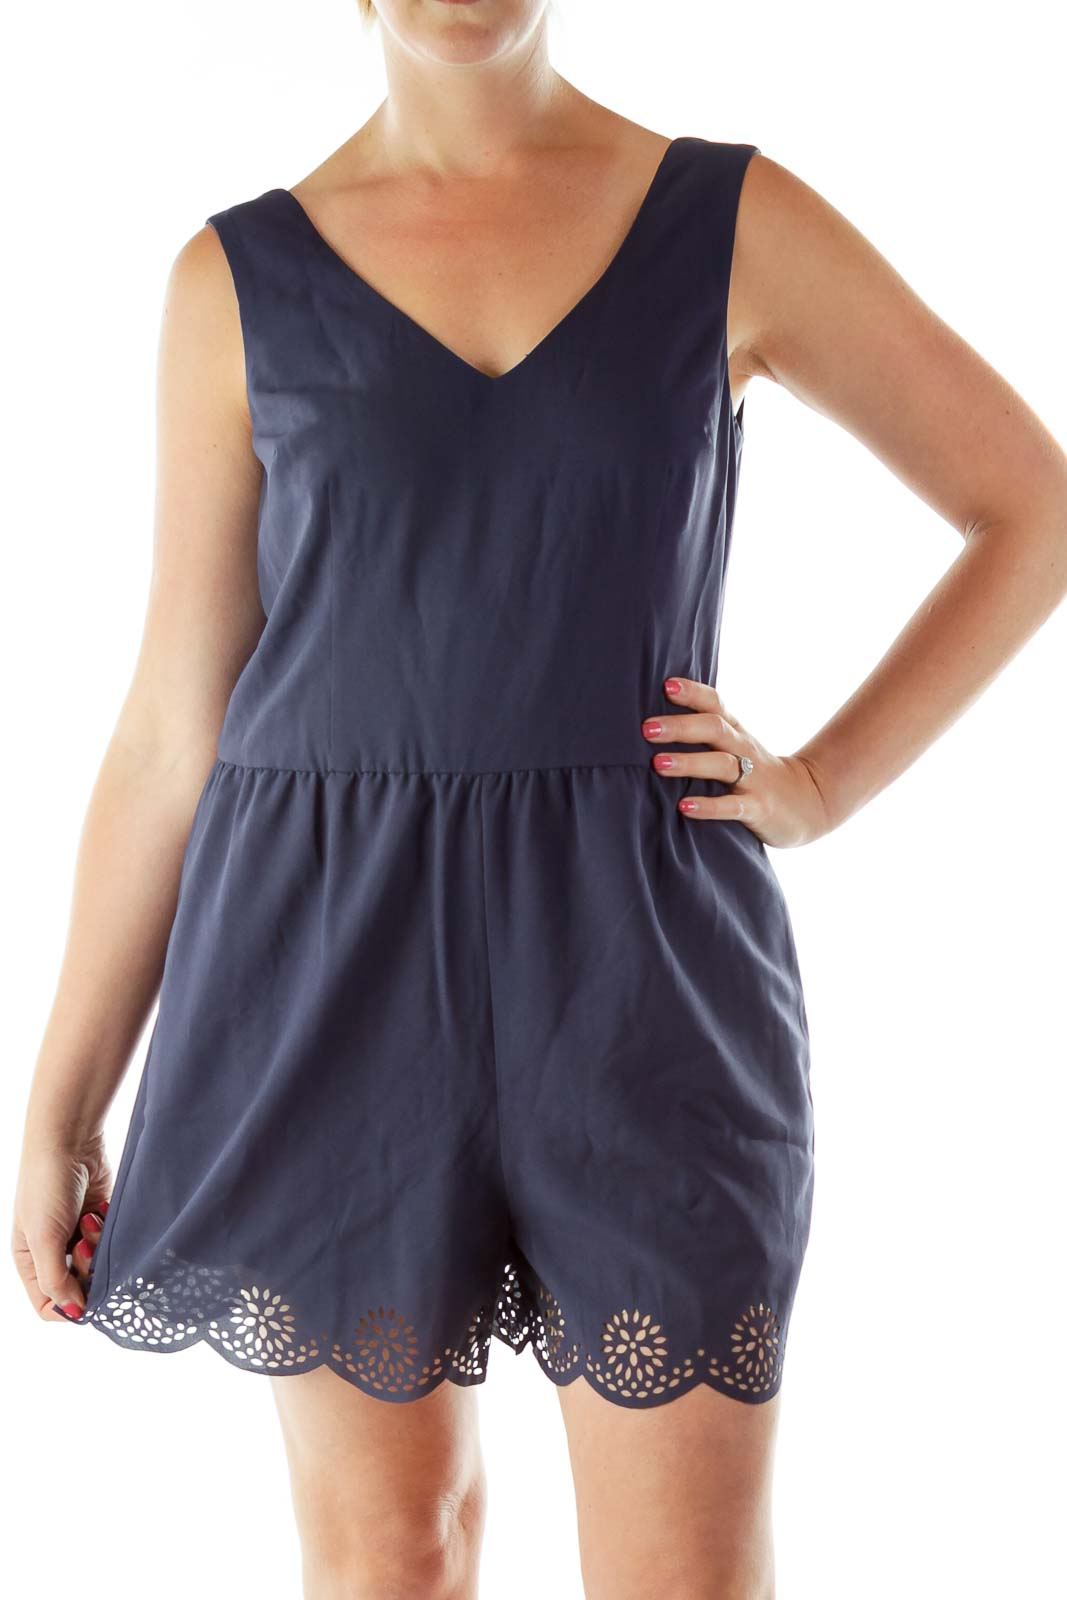 Navy Cut-out Detail Romper Front